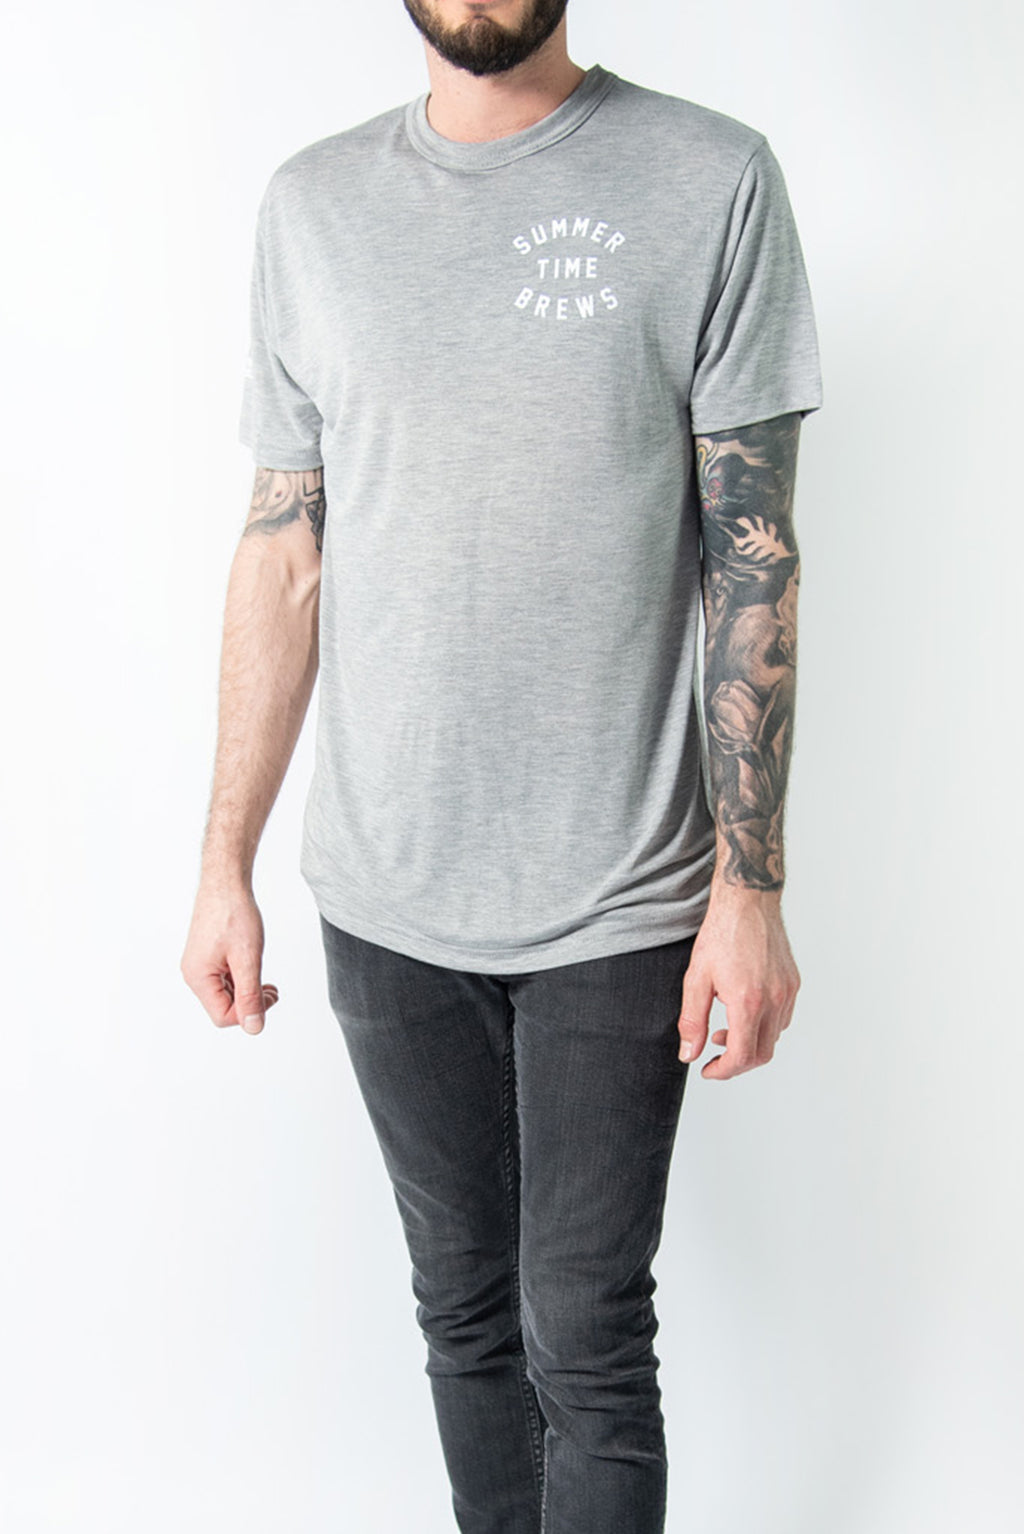 SUMMER TIME BREWS T-SHIRT GREY